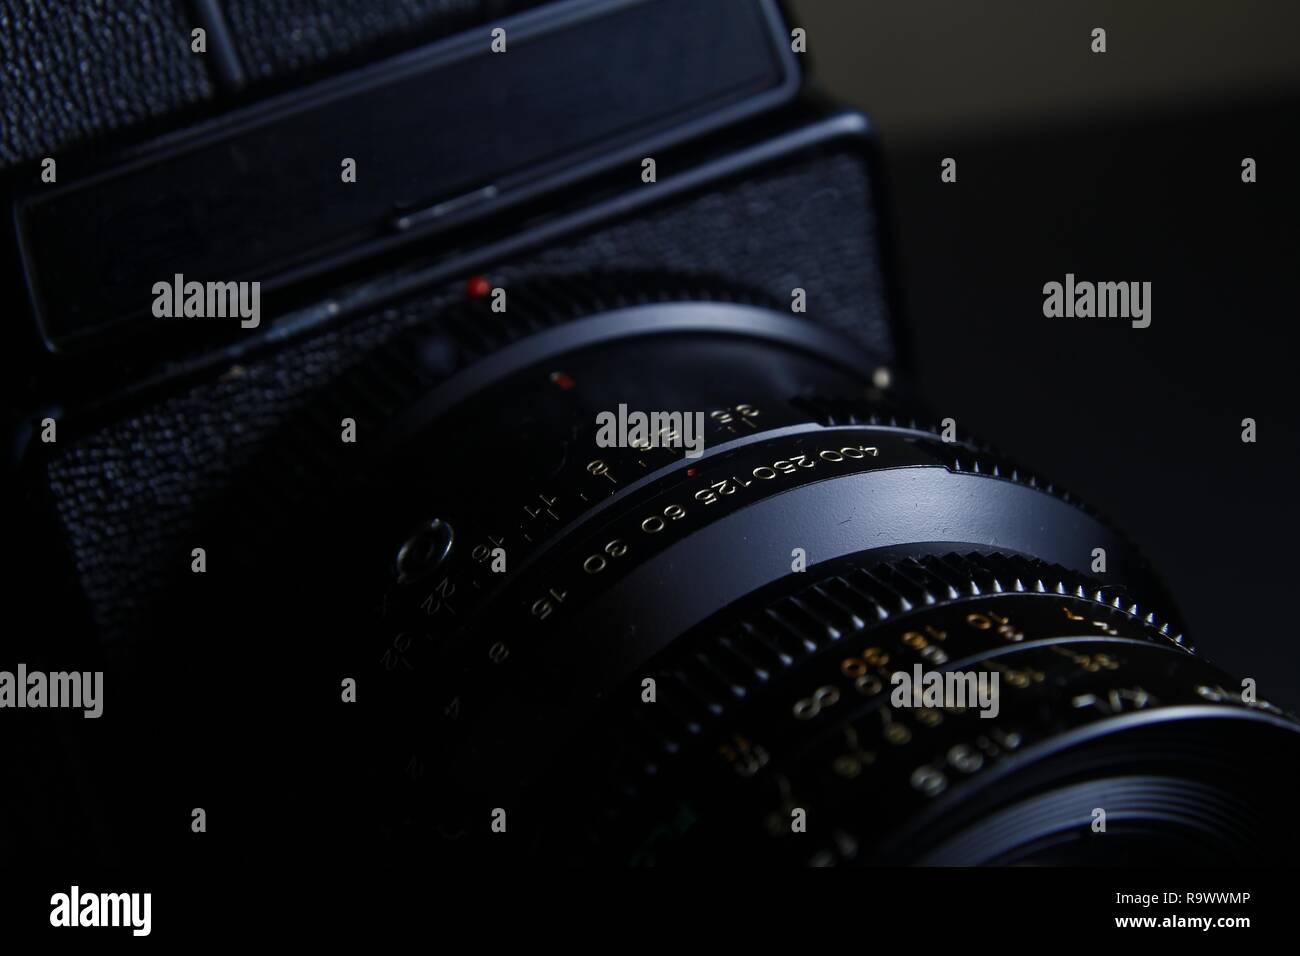 Close up shot of the shutterspeed and aperture ring on the leaf shutter lens of a vintage medium format film camera. Stock Photo